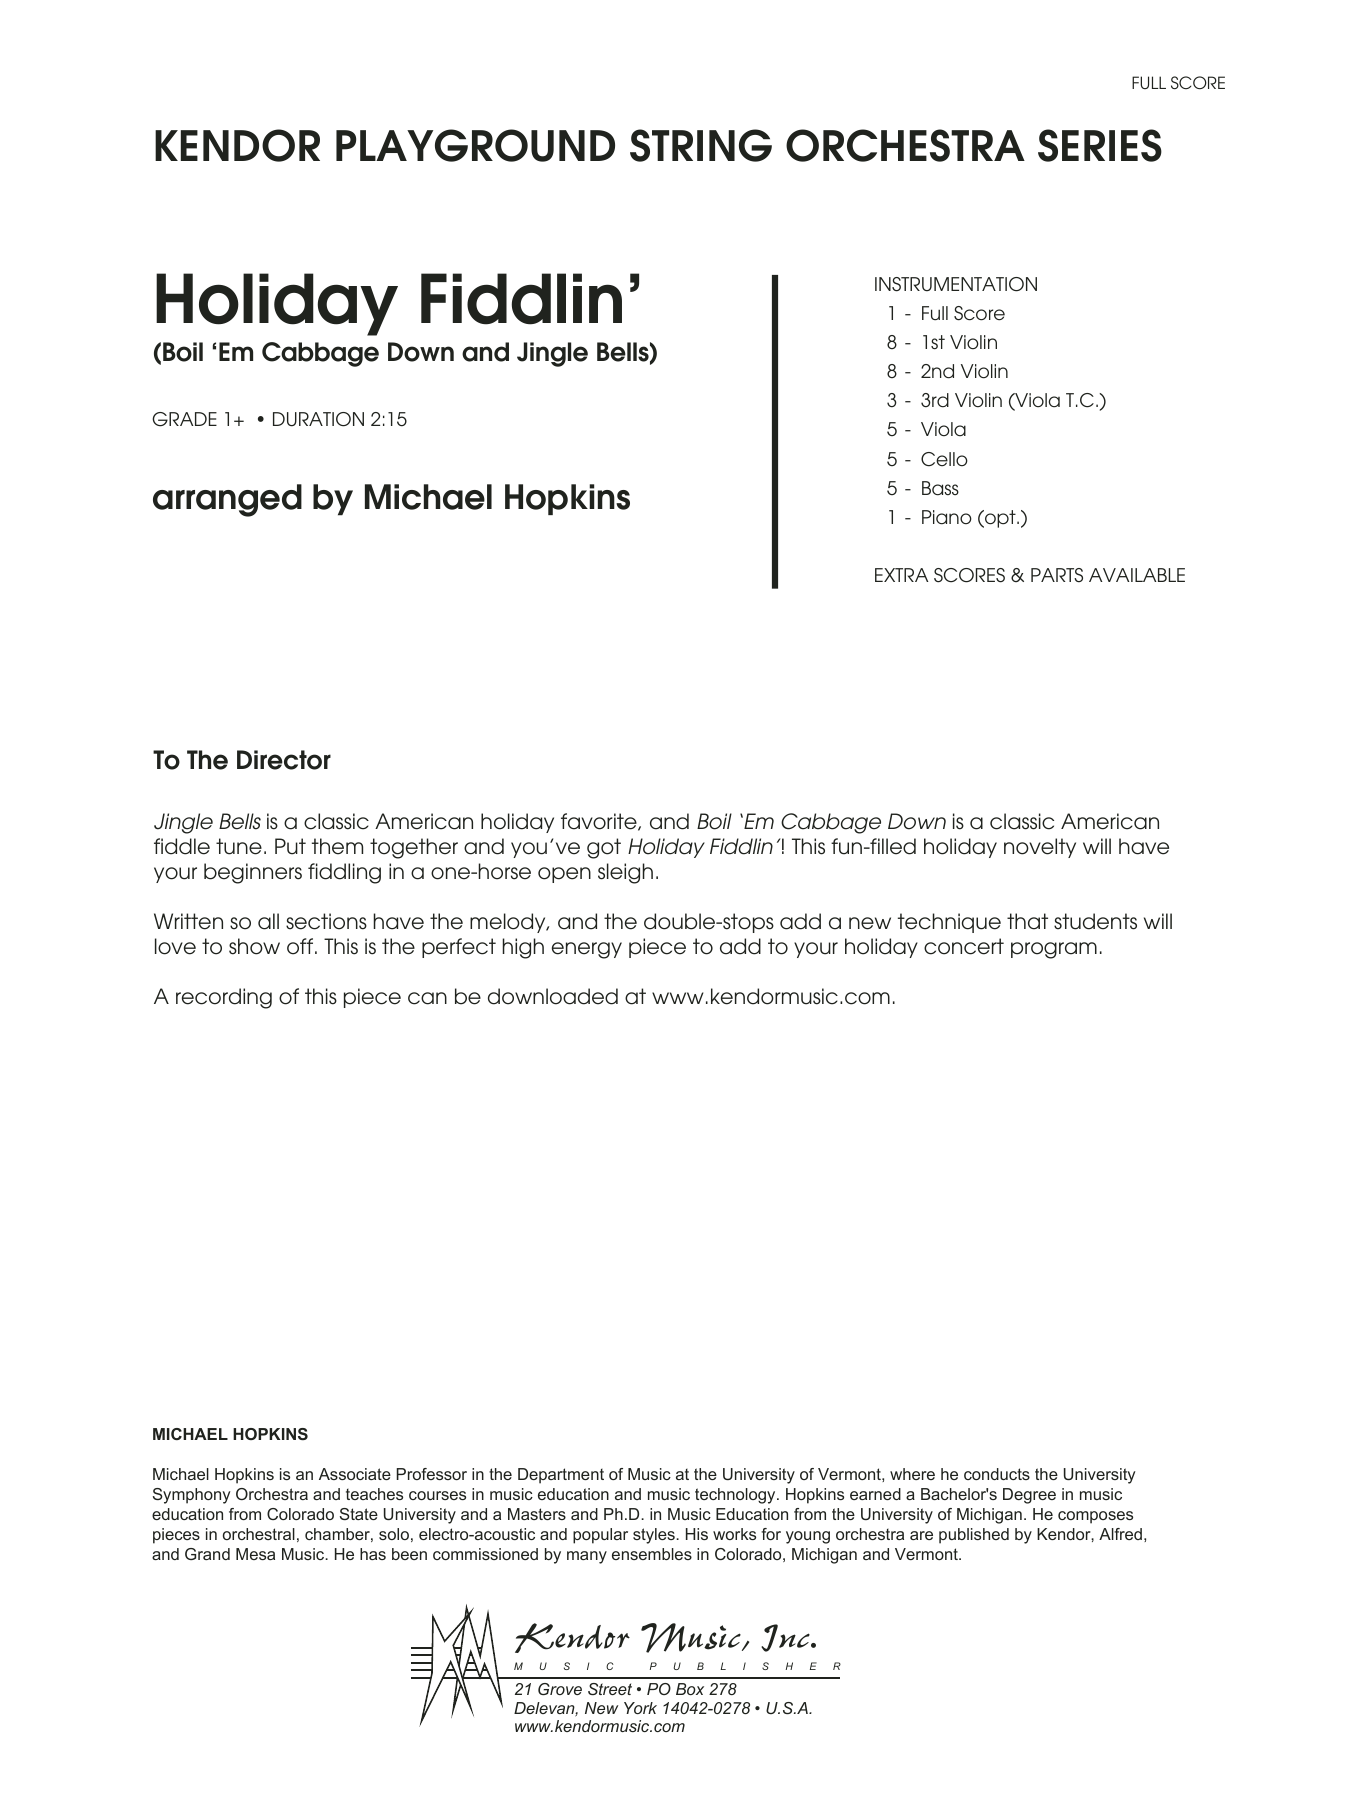 Holiday Fiddlin' (Boil 'Em Cabbage Down and Jingle Bells) (COMPLETE) sheet music for orchestra by Michael Hopkins. Score Image Preview.